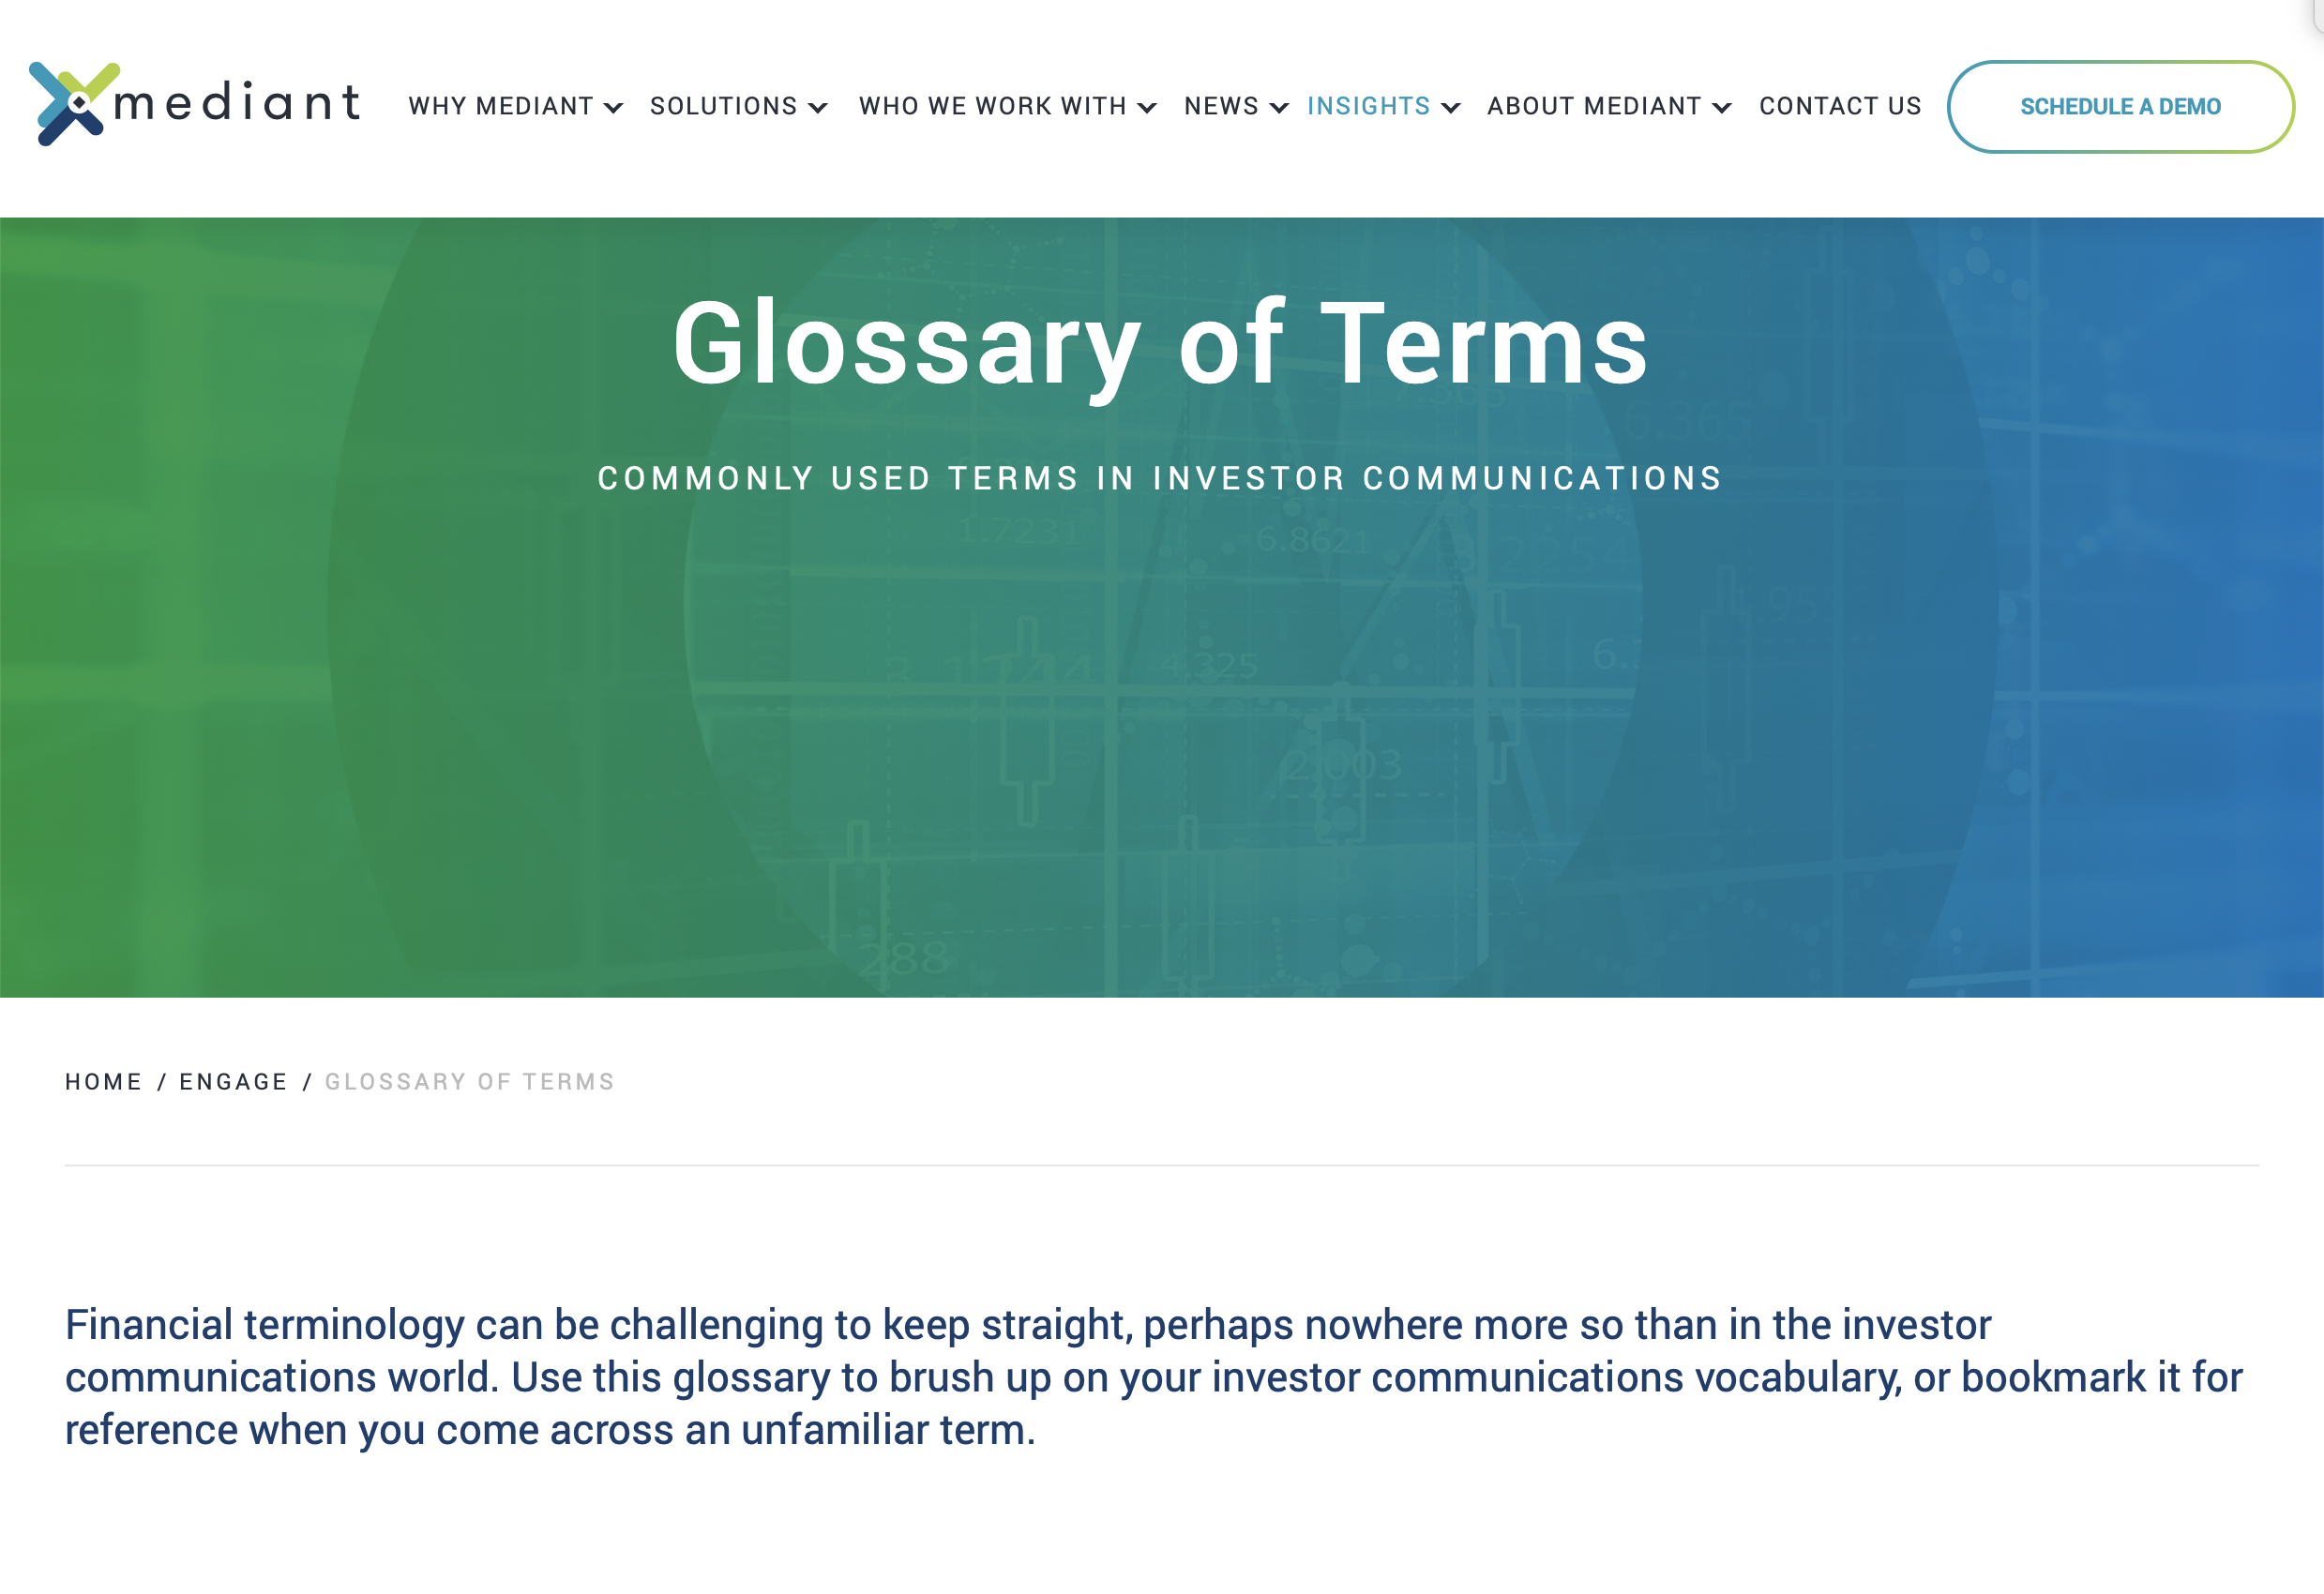 Glossary of Terms Webpage